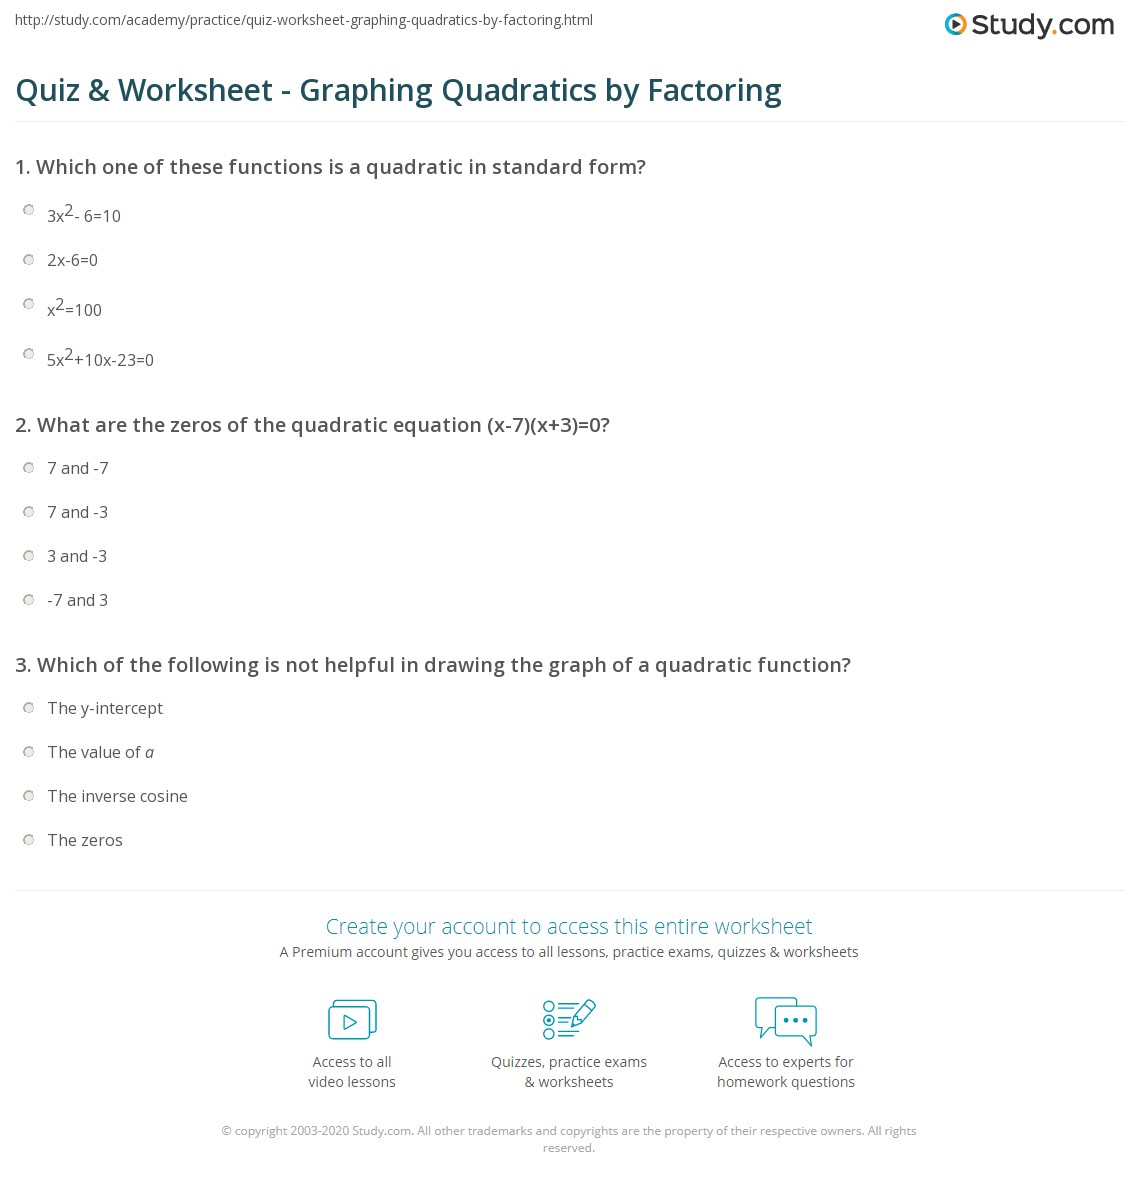 Graphing Quadratics Worksheet crapdesign – Graphing Quadratic Functions in Standard Form Worksheet